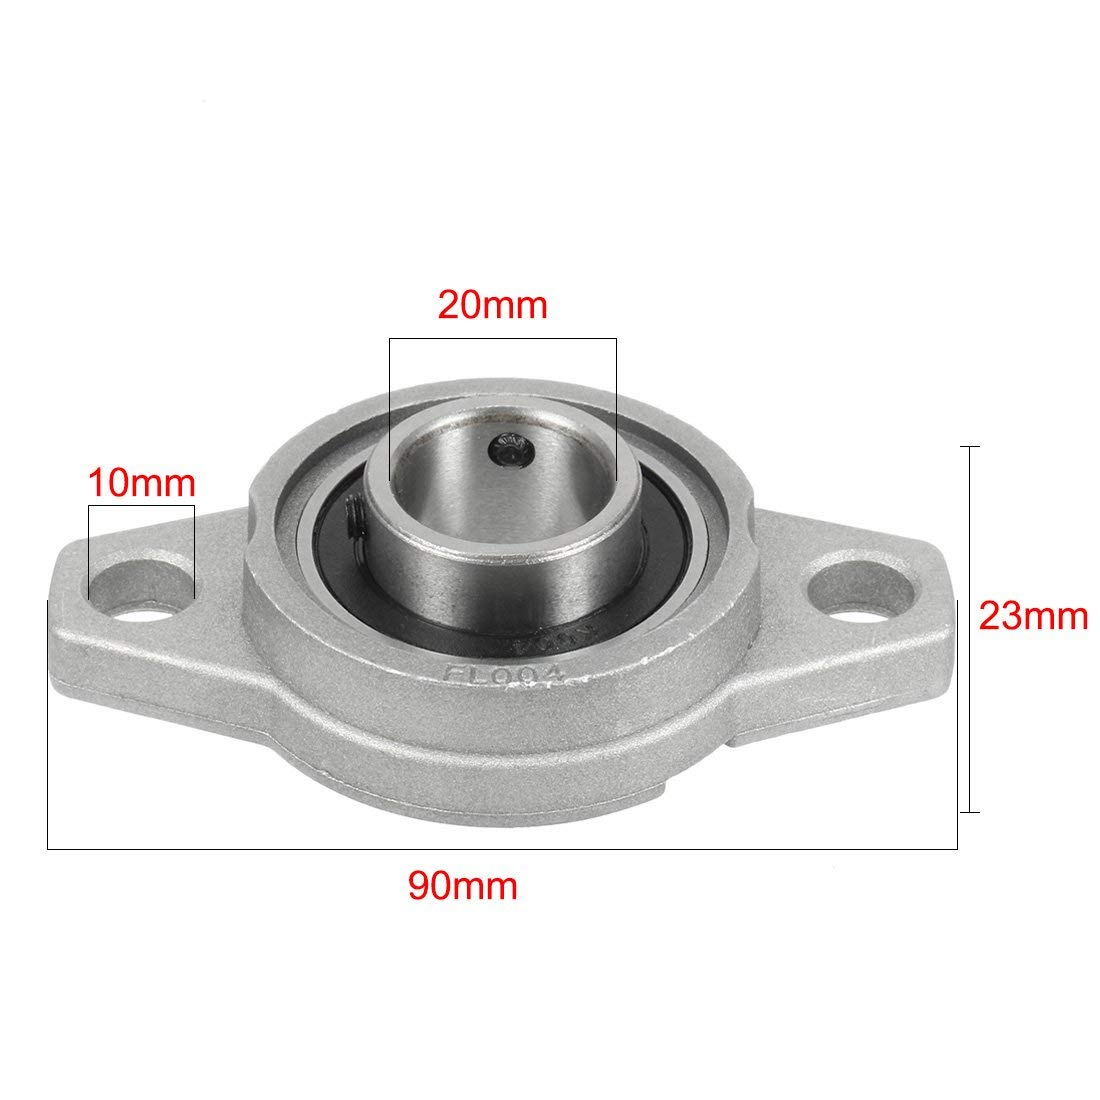 Xnrtop KFL004 20mm Zinc Alloy Self Aligning Pillow Block Flange Bearing Zinc Pack of 2